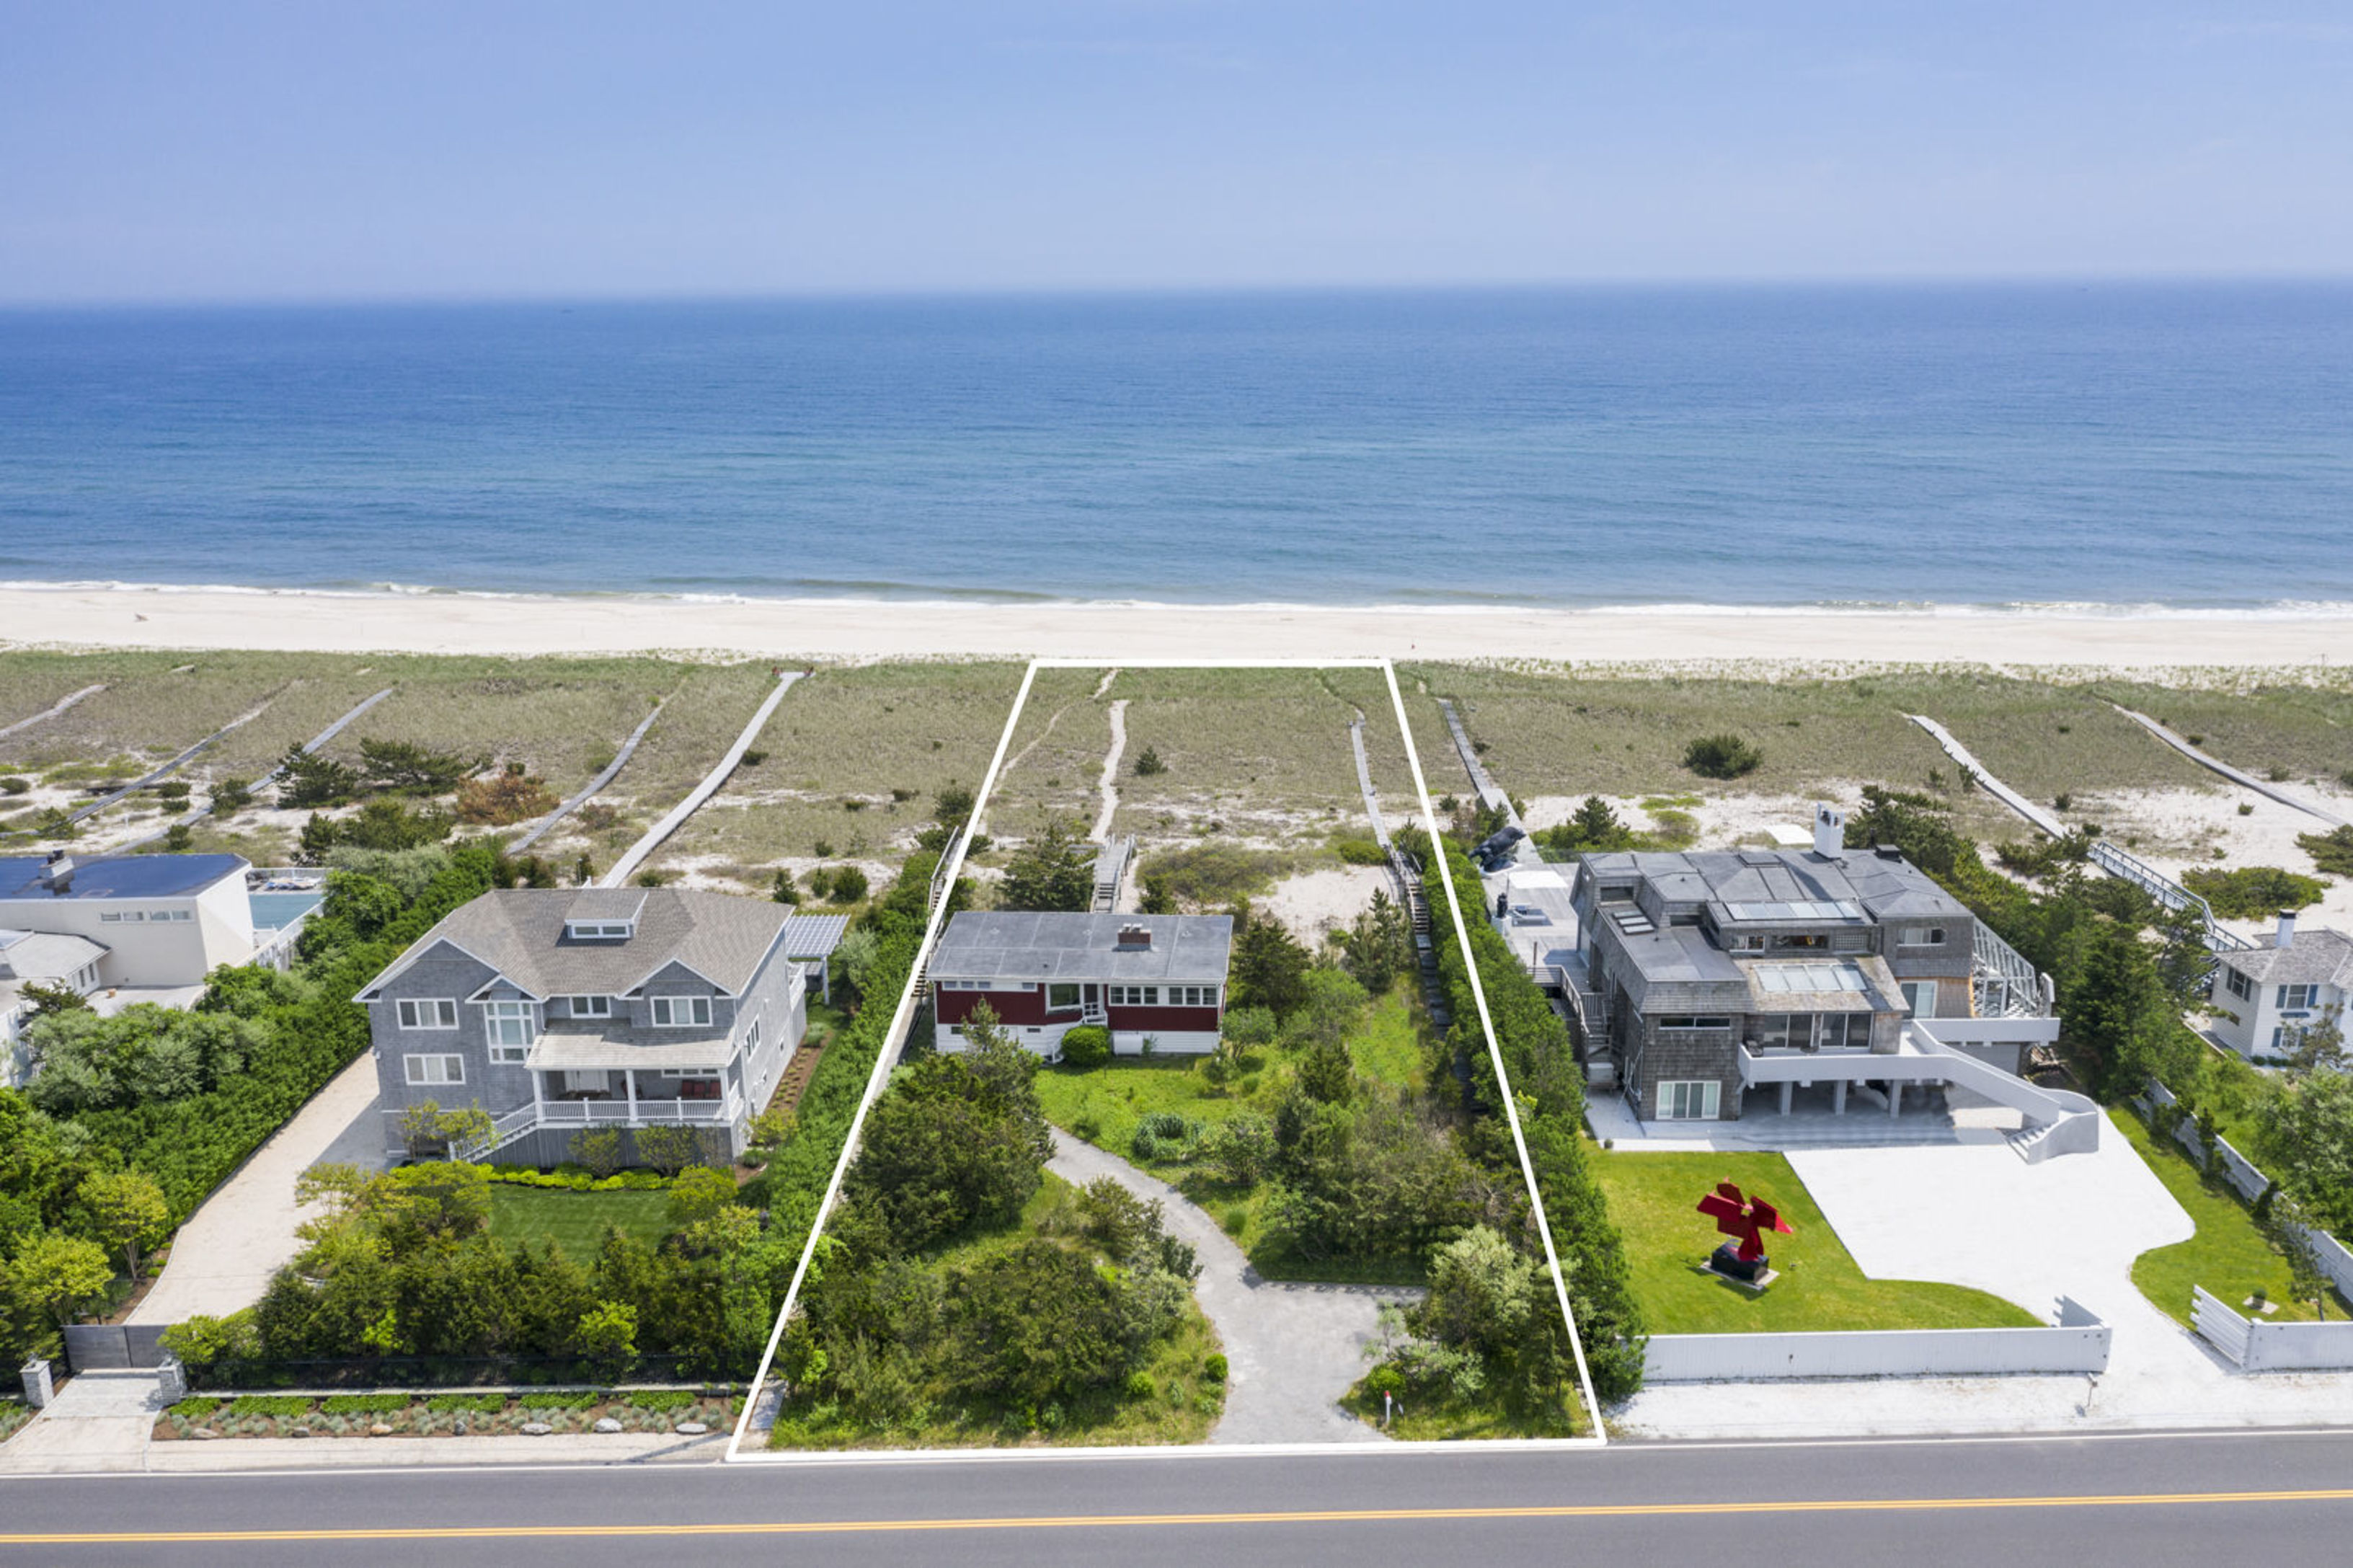 17 Dune Rd - Westhampton Beach South, New York